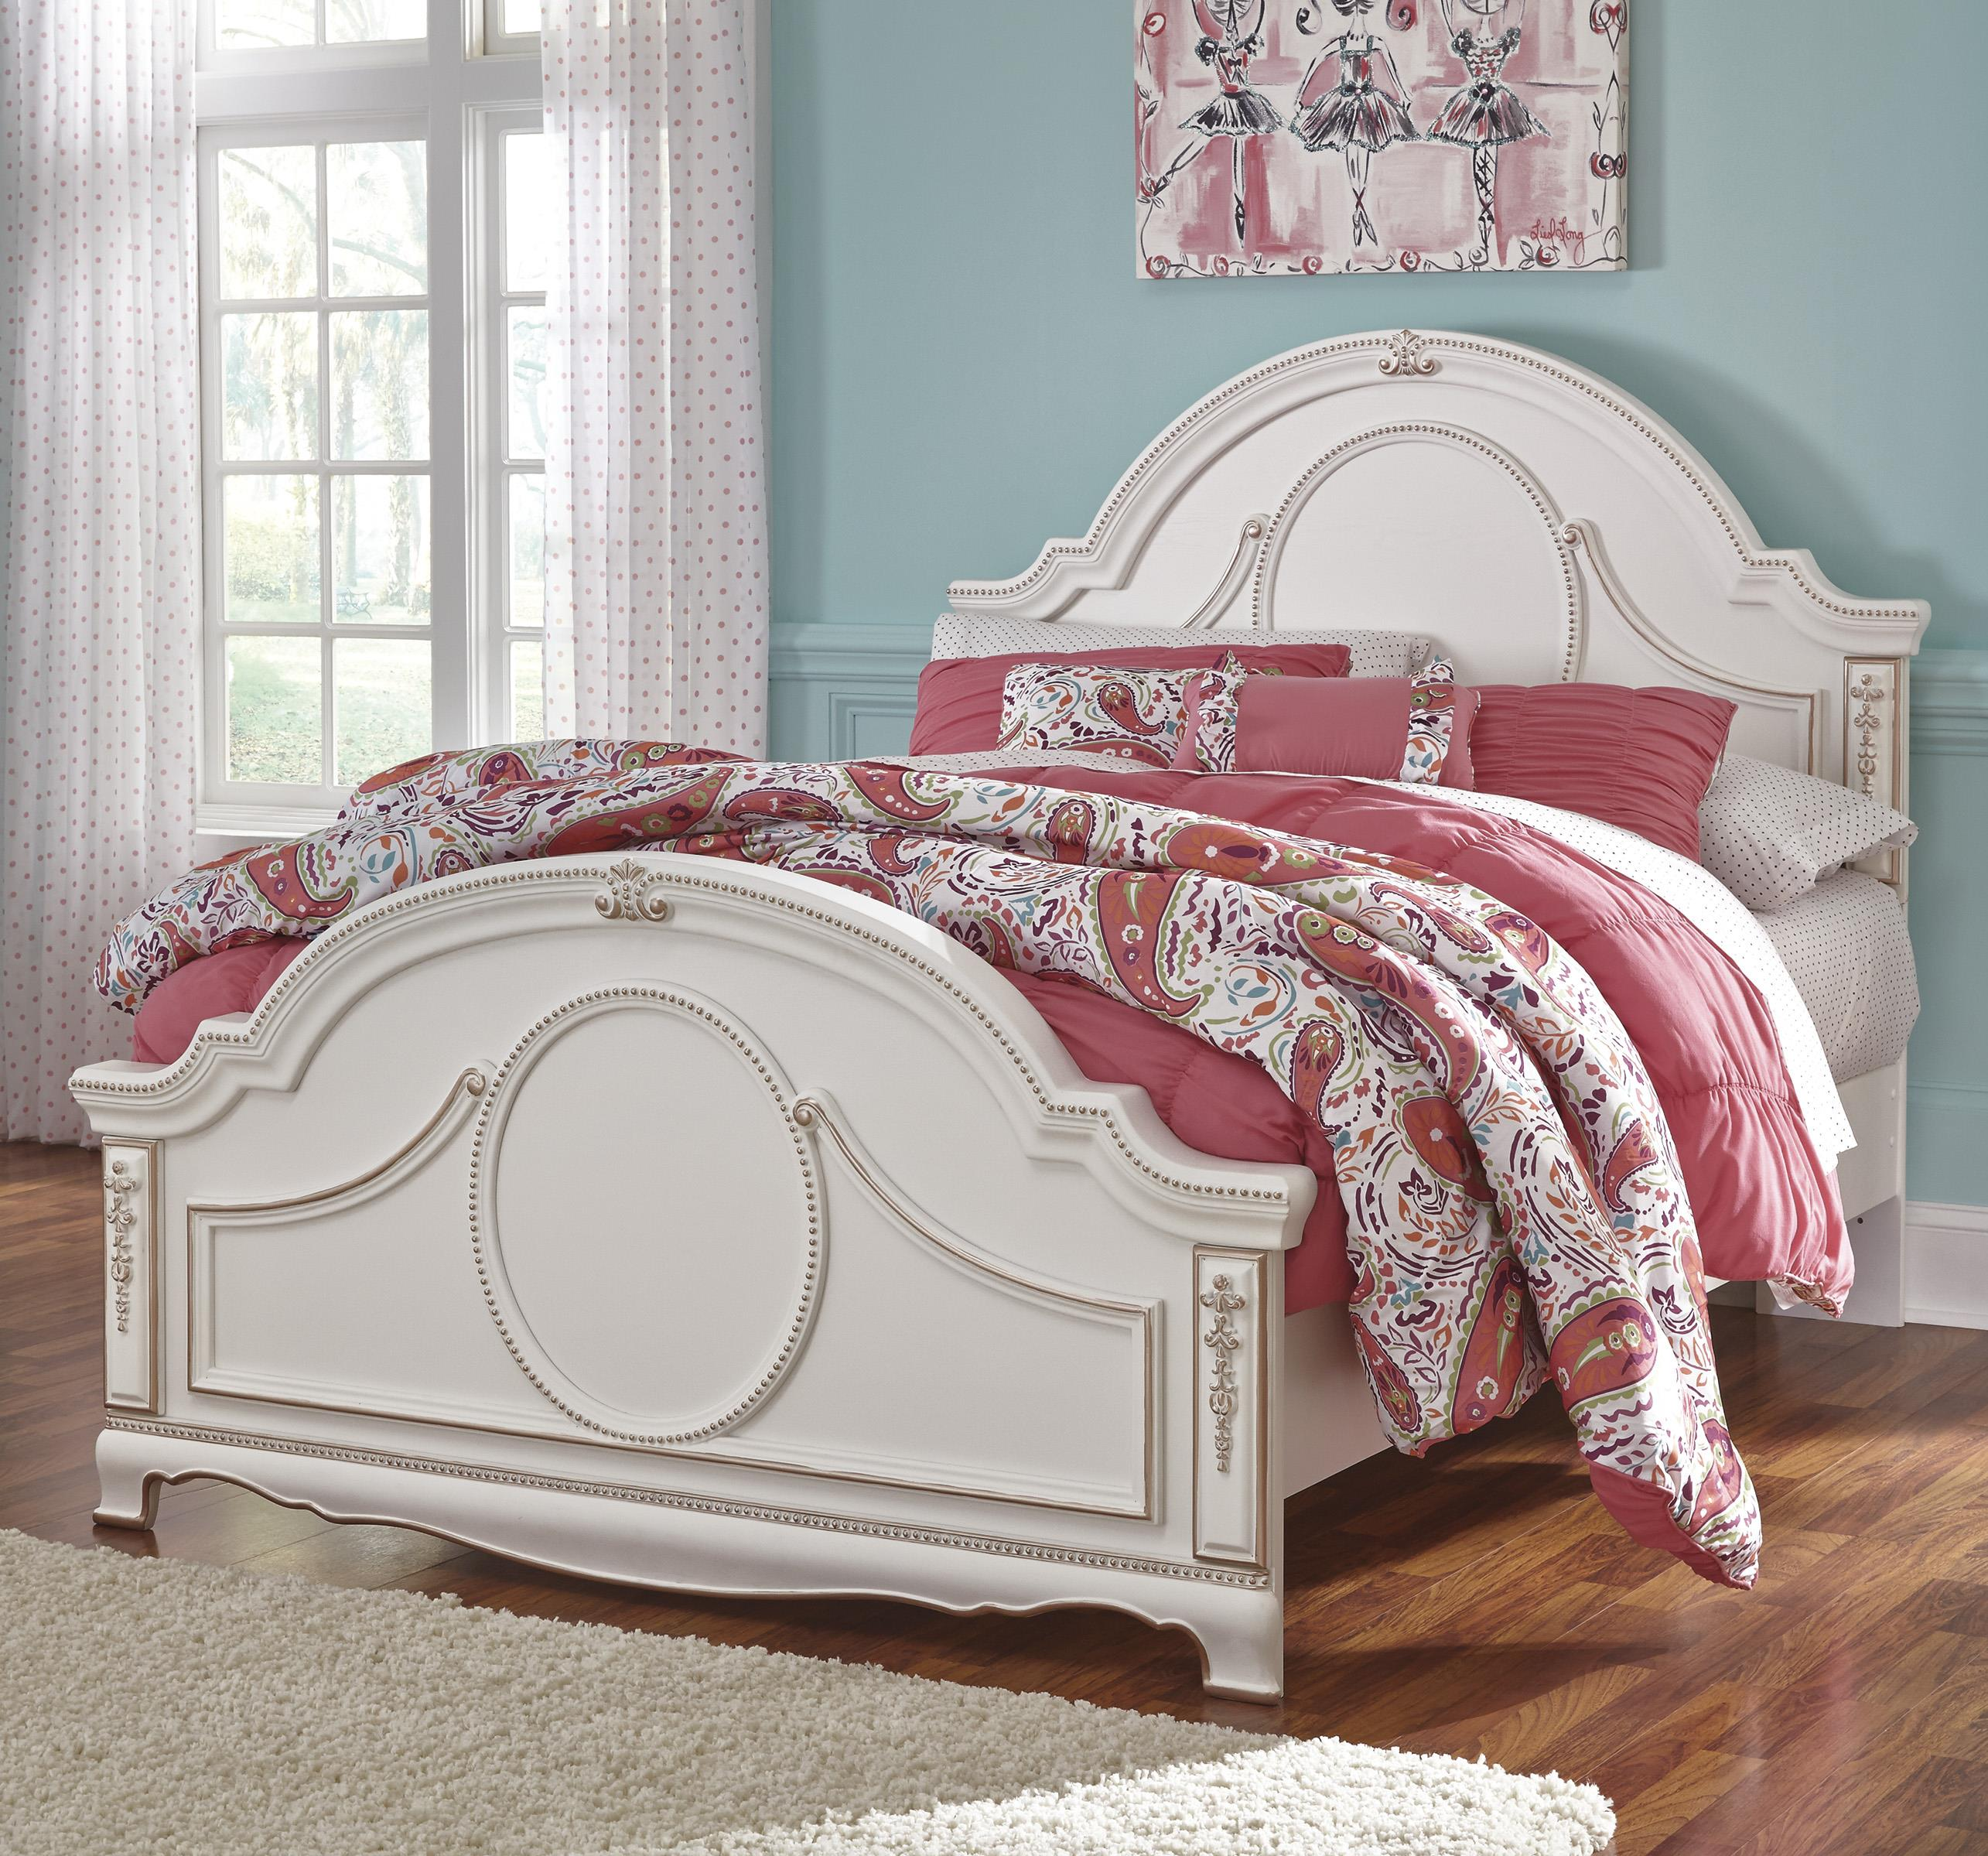 Signature Design by Ashley Korabella Full Panel Bed - Item Number: B355-87+84+86